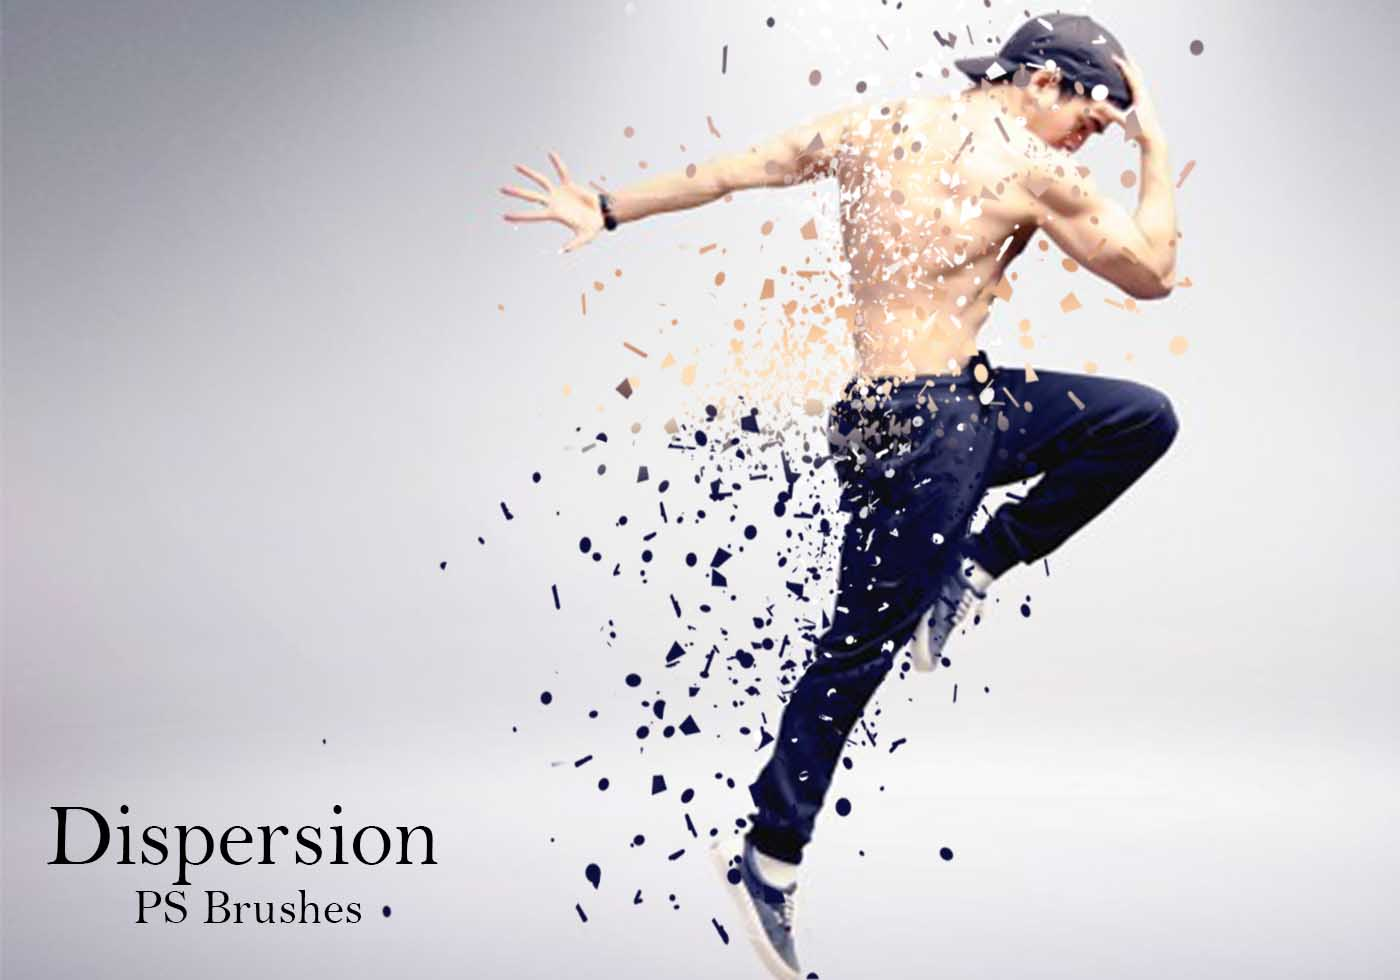 Dispersion effect free brushes 701 free downloads